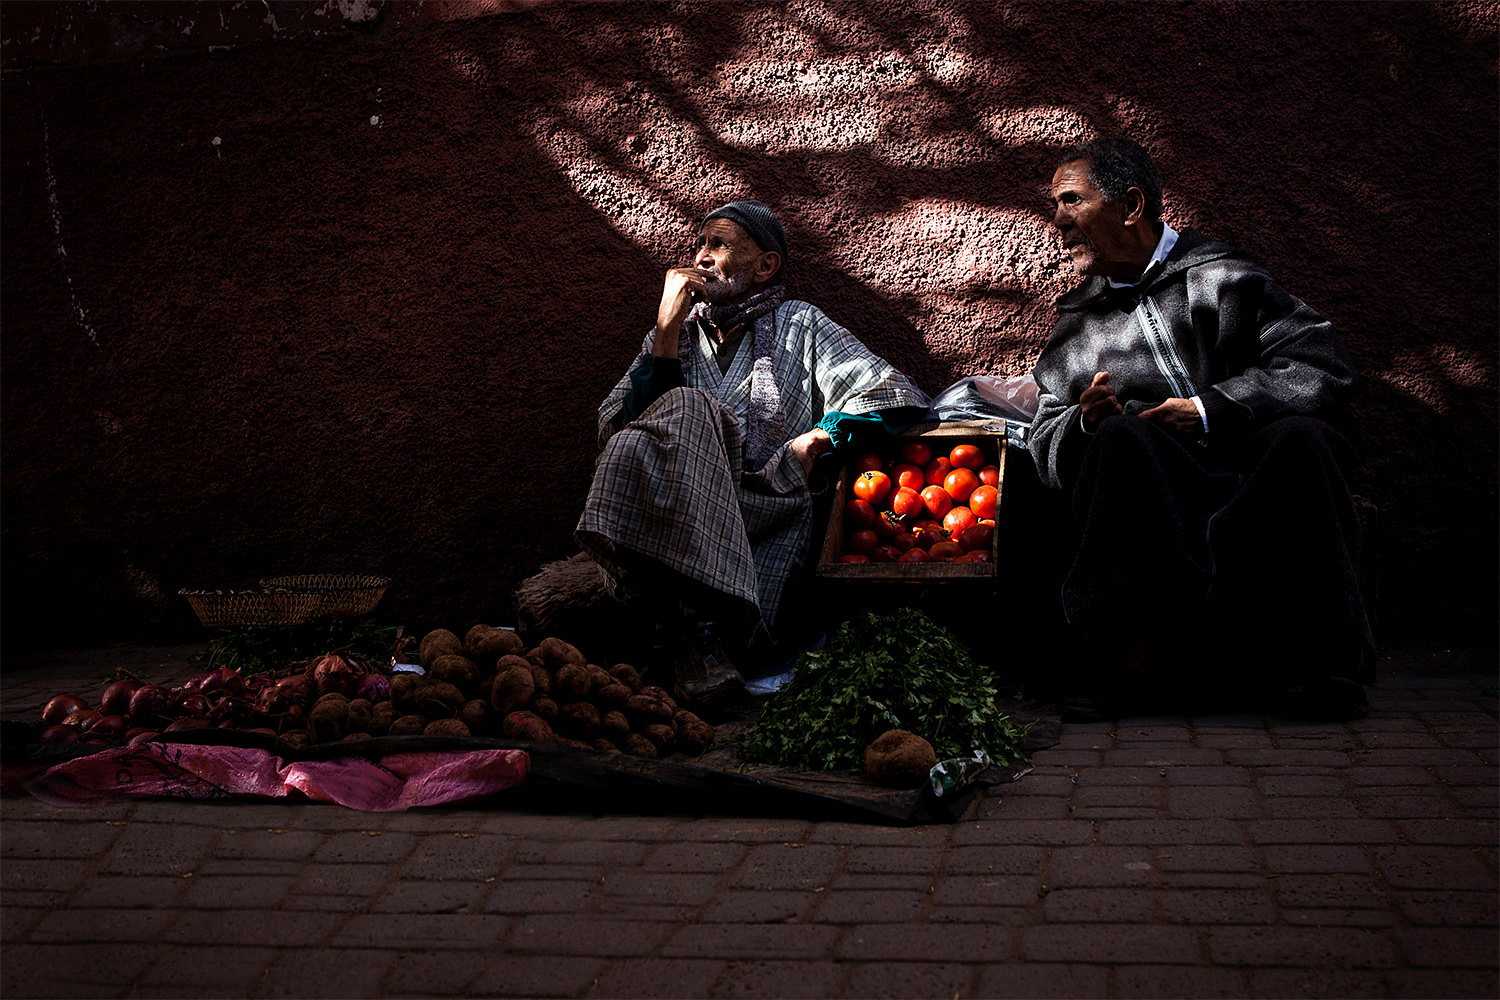 Two men in a souk in the center of Marrakech- Morocco